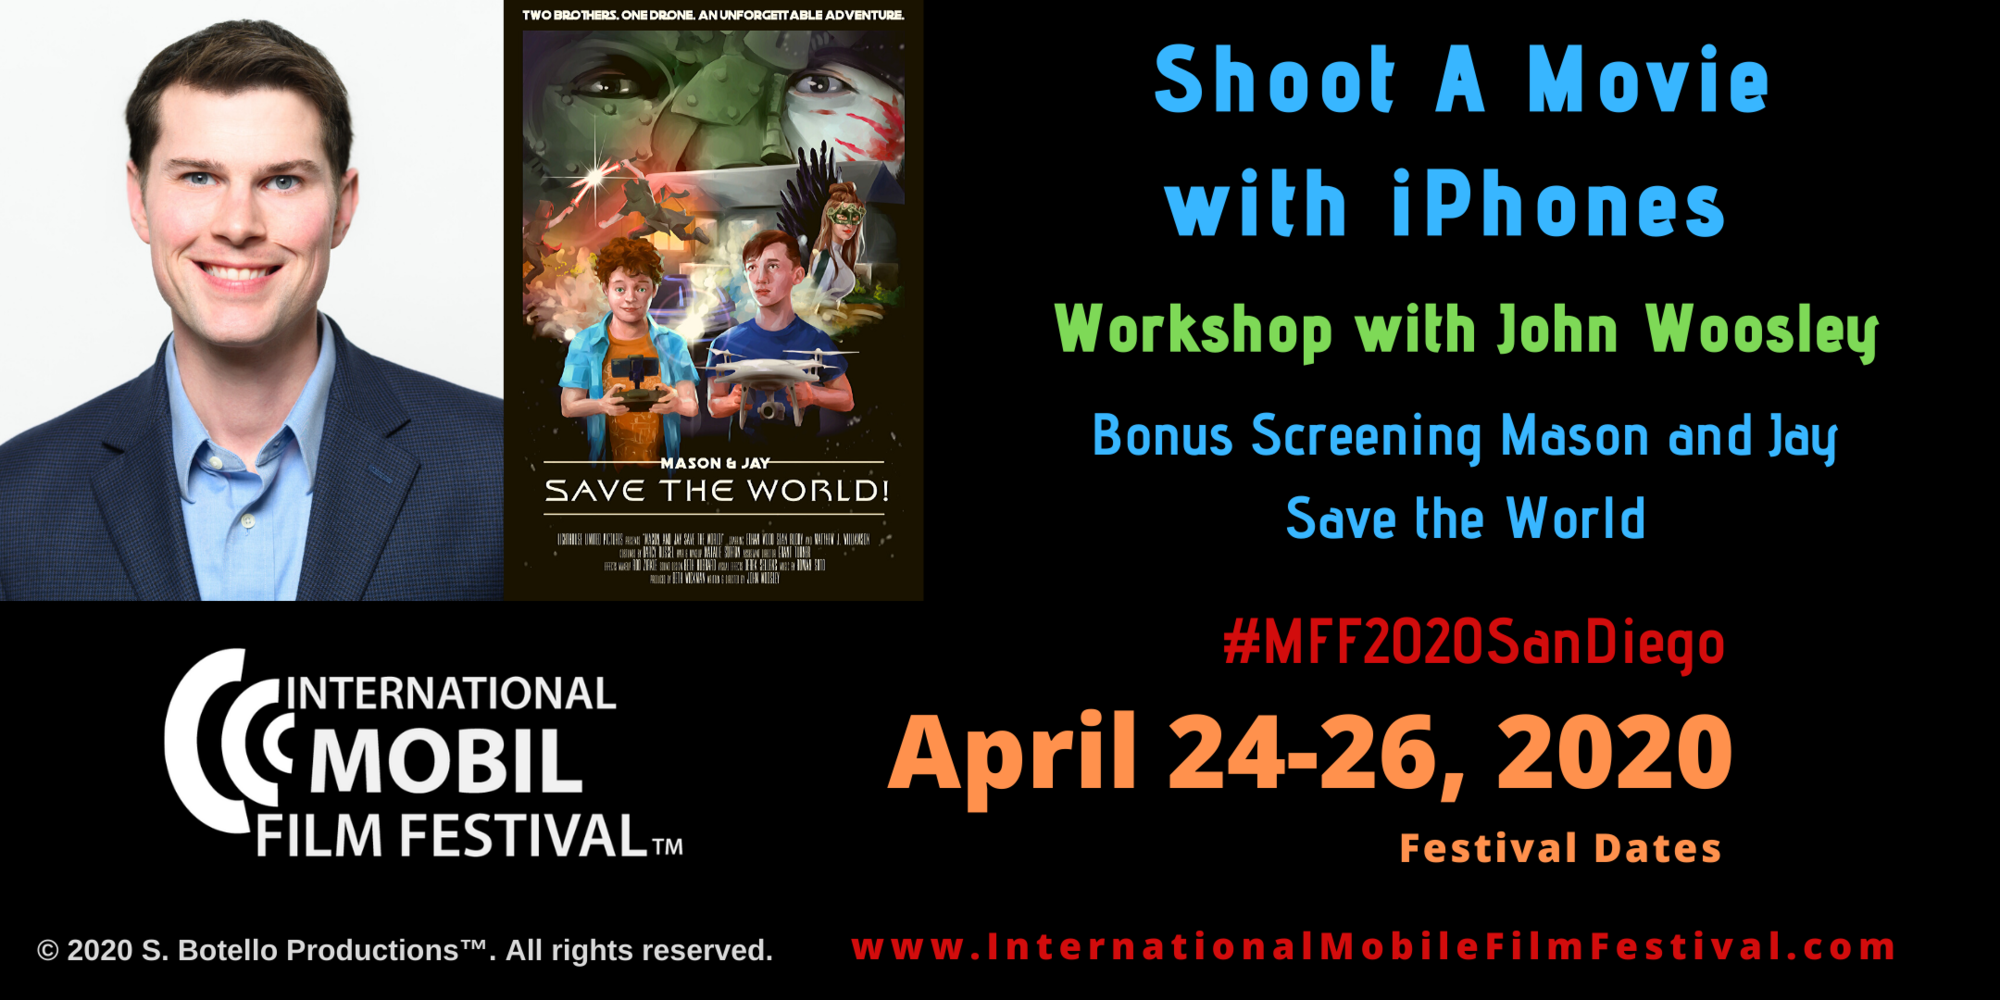 Shoot  A Movie with iPhones Workshop IMFF 2020 2160X1080.png